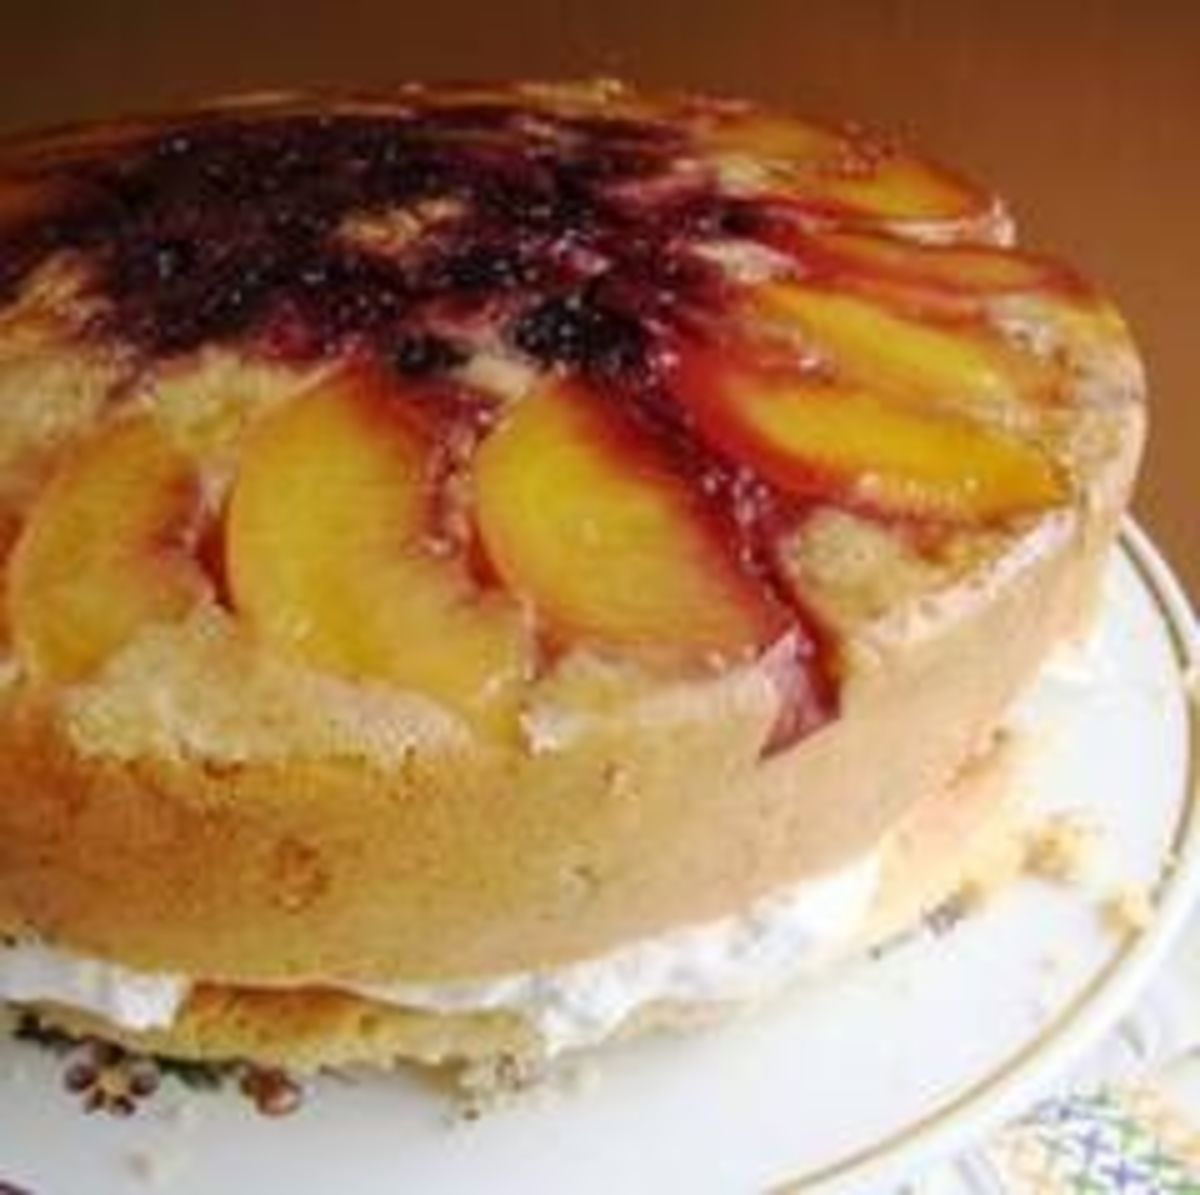 12 Unique Upside Down Cake Recipes ... You'll Absolutely Love!